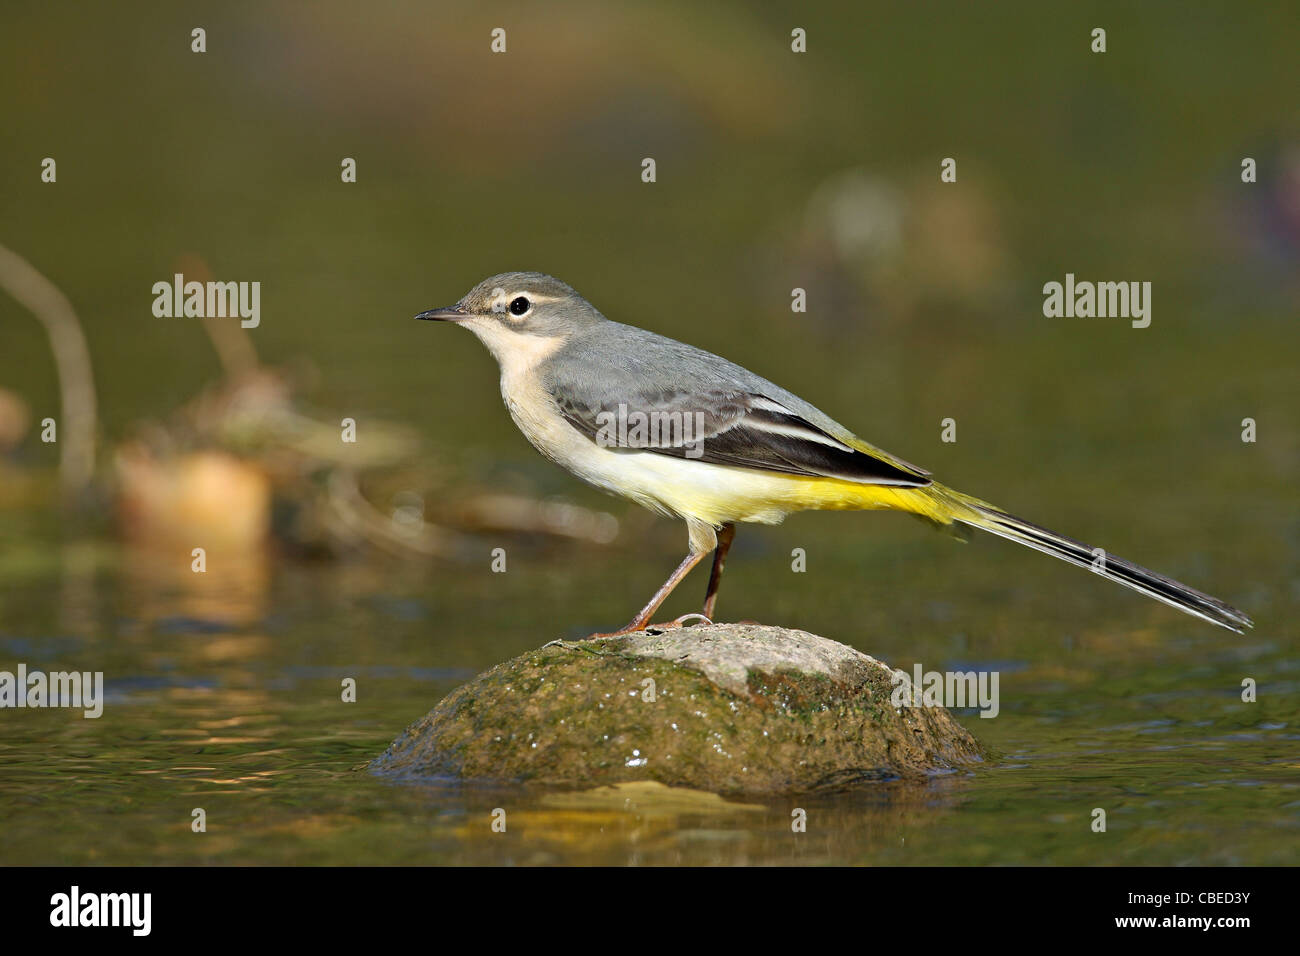 Grey Grey Wagtail (Motacilla cinerea) foraging in a flowing stream. - Stock Image